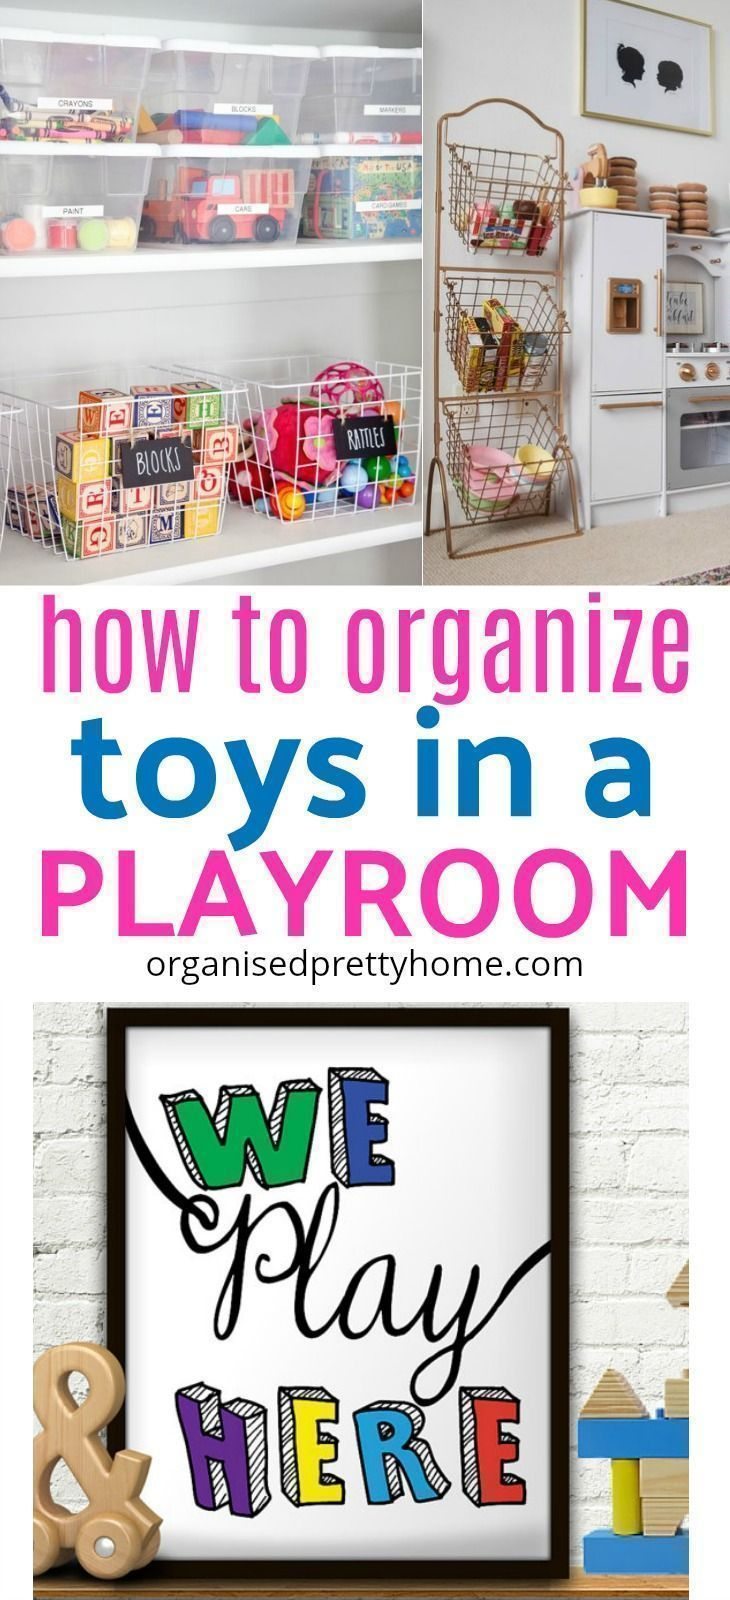 Is the mess and clutter of the kids' toys driving you crazy? Here's 10 #organizing ideas. Storage solution. Best toy organization ideas for kids. Children 's playroom, living room or bedroom. Shelves. Baskets. Declutter #playroom #playroomdecor #playroomideas #toyorganization #playroomstorage #kidsrooms #kidsbedroom #kidstoystorage #toystorageideas #declutter #toystorage #organizingclutter #cluttersolutions #clutterstorage